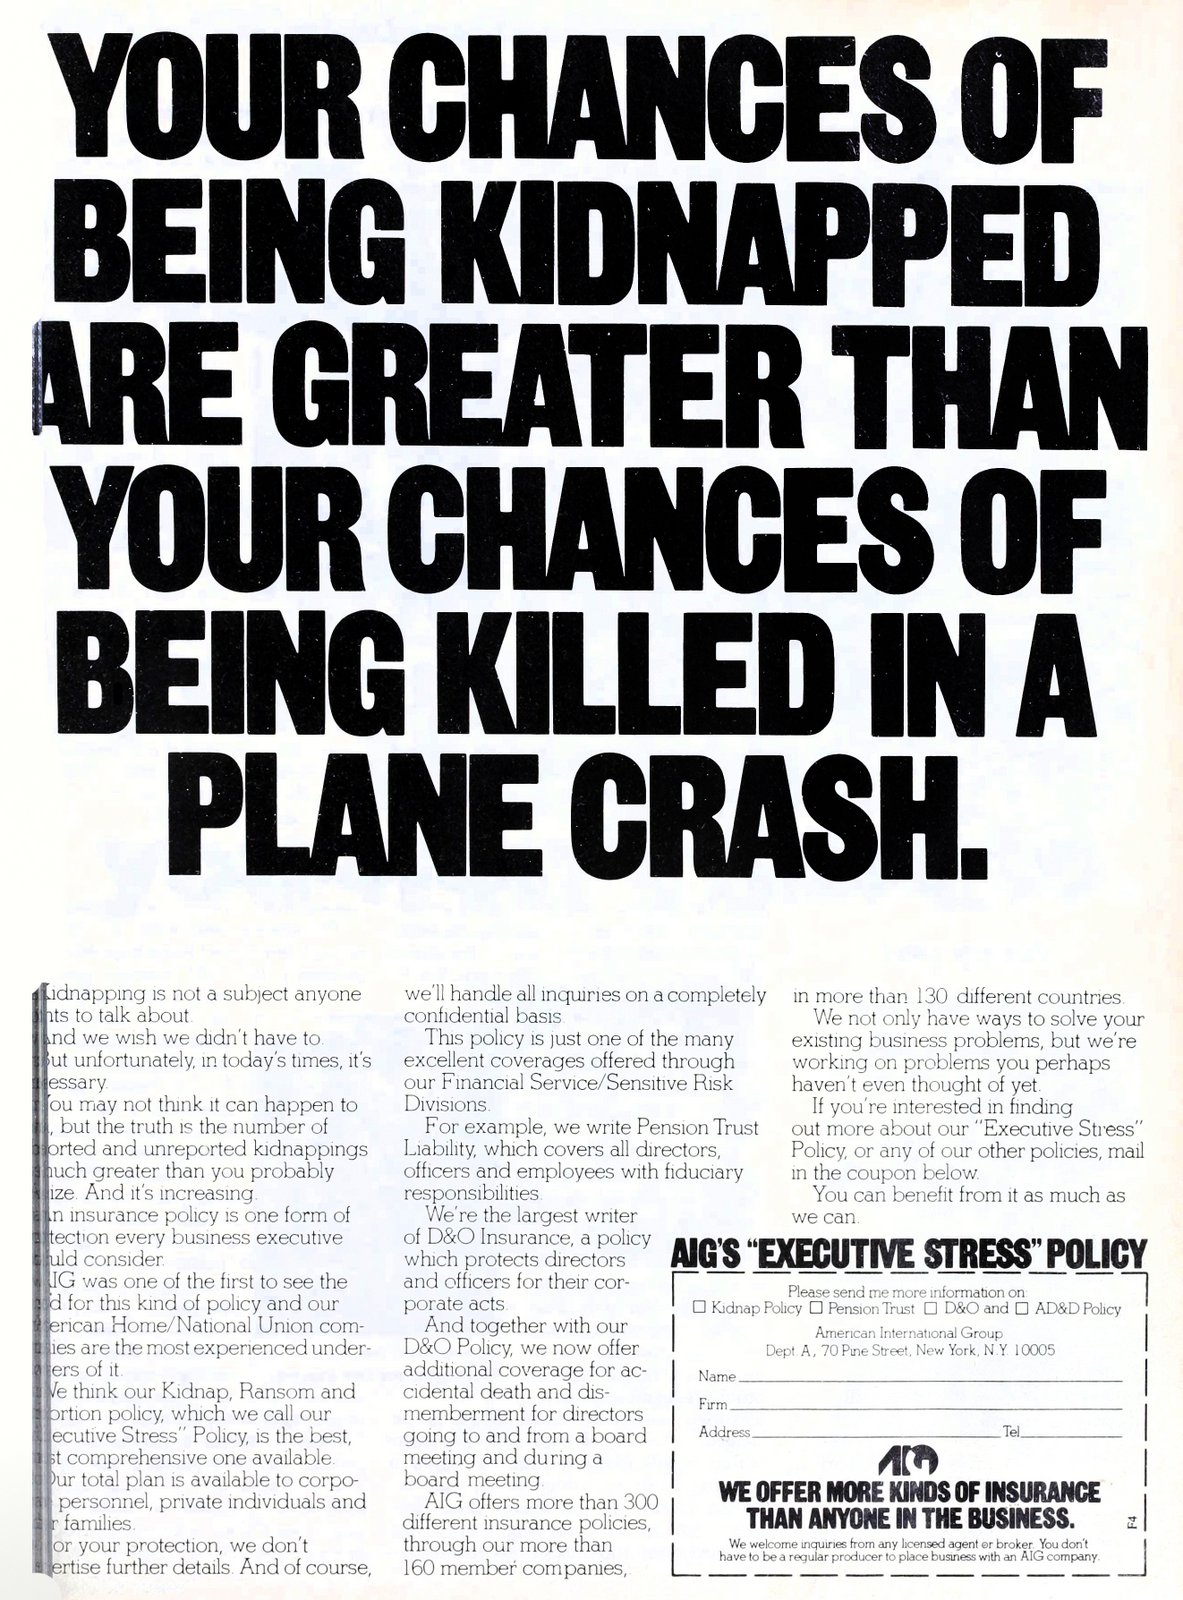 Chances of being kidnapped - AIG Executive Stress policy from 1978 (1)